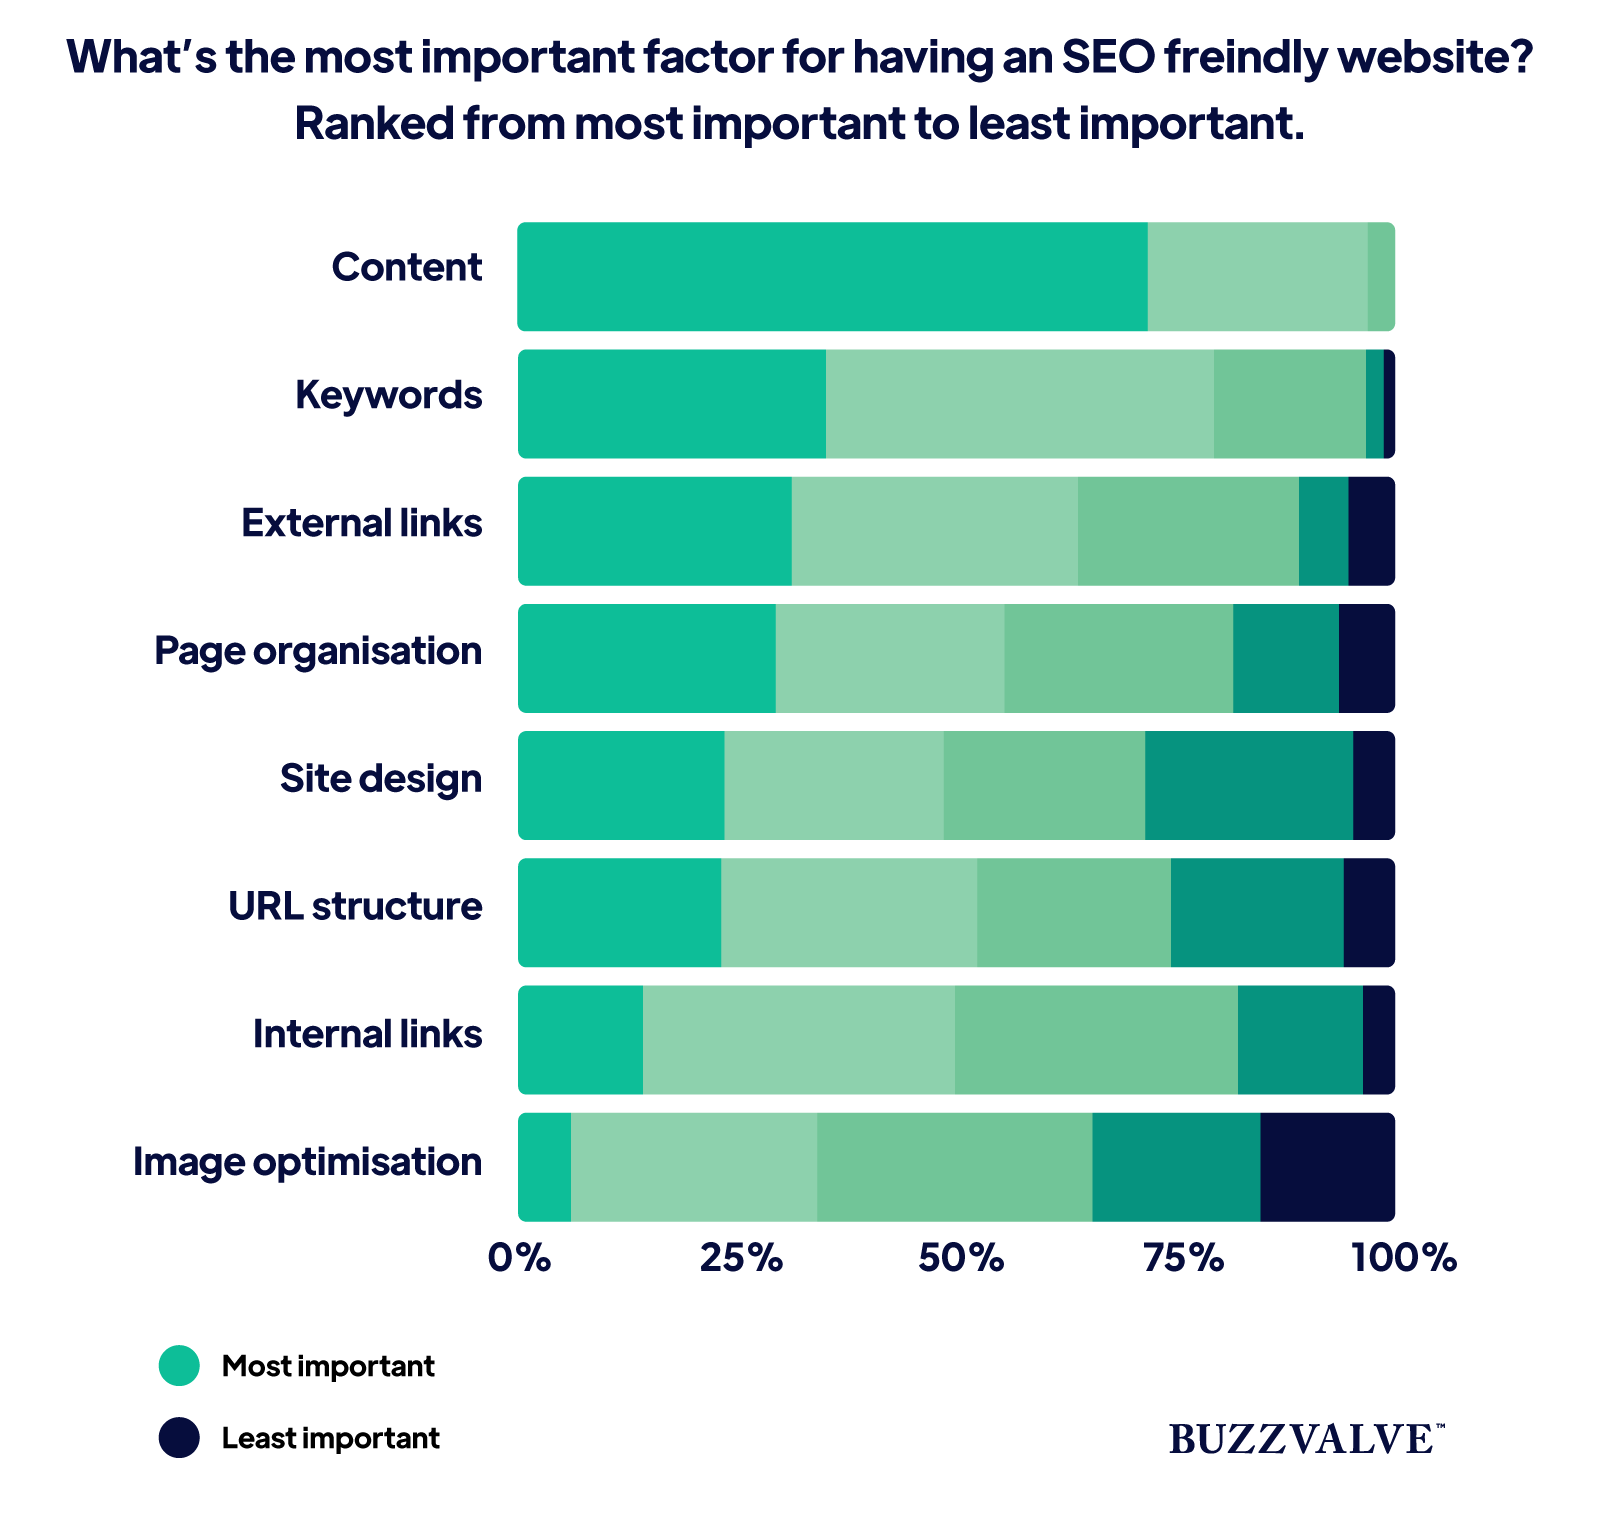 Most important factor for having an SEO friendly website